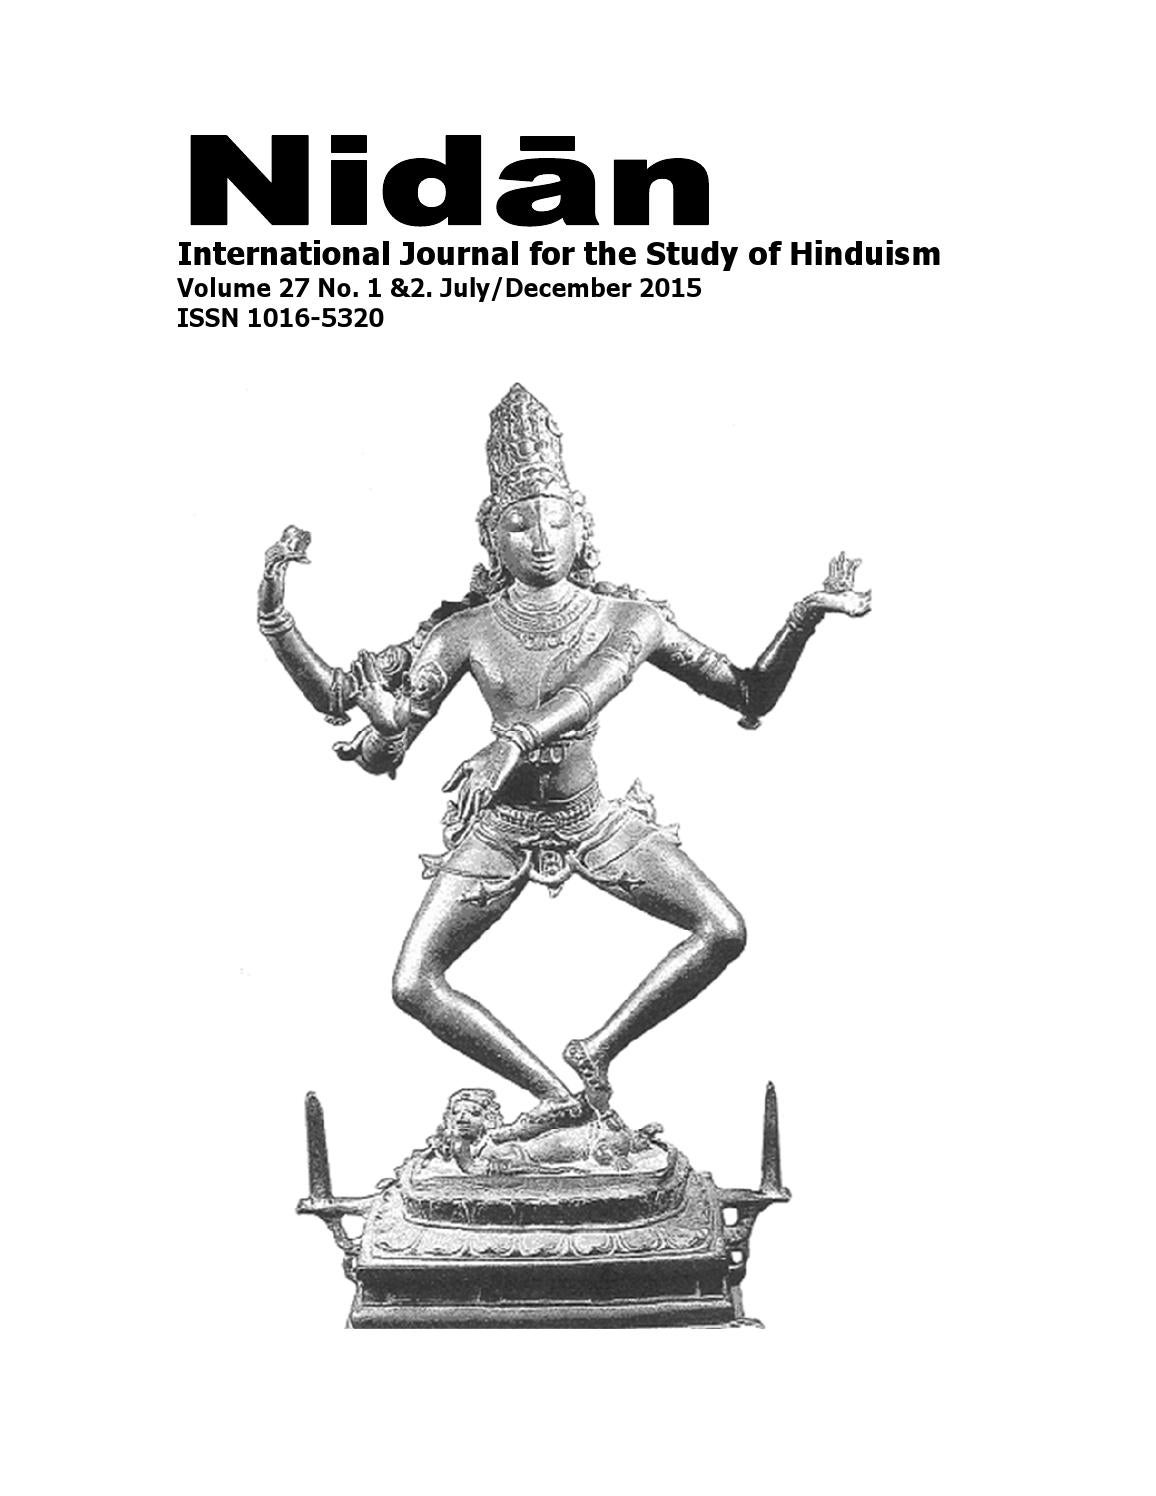 Nidan Volume 27 No. 1 & 2. July/December 2015 by UKZN